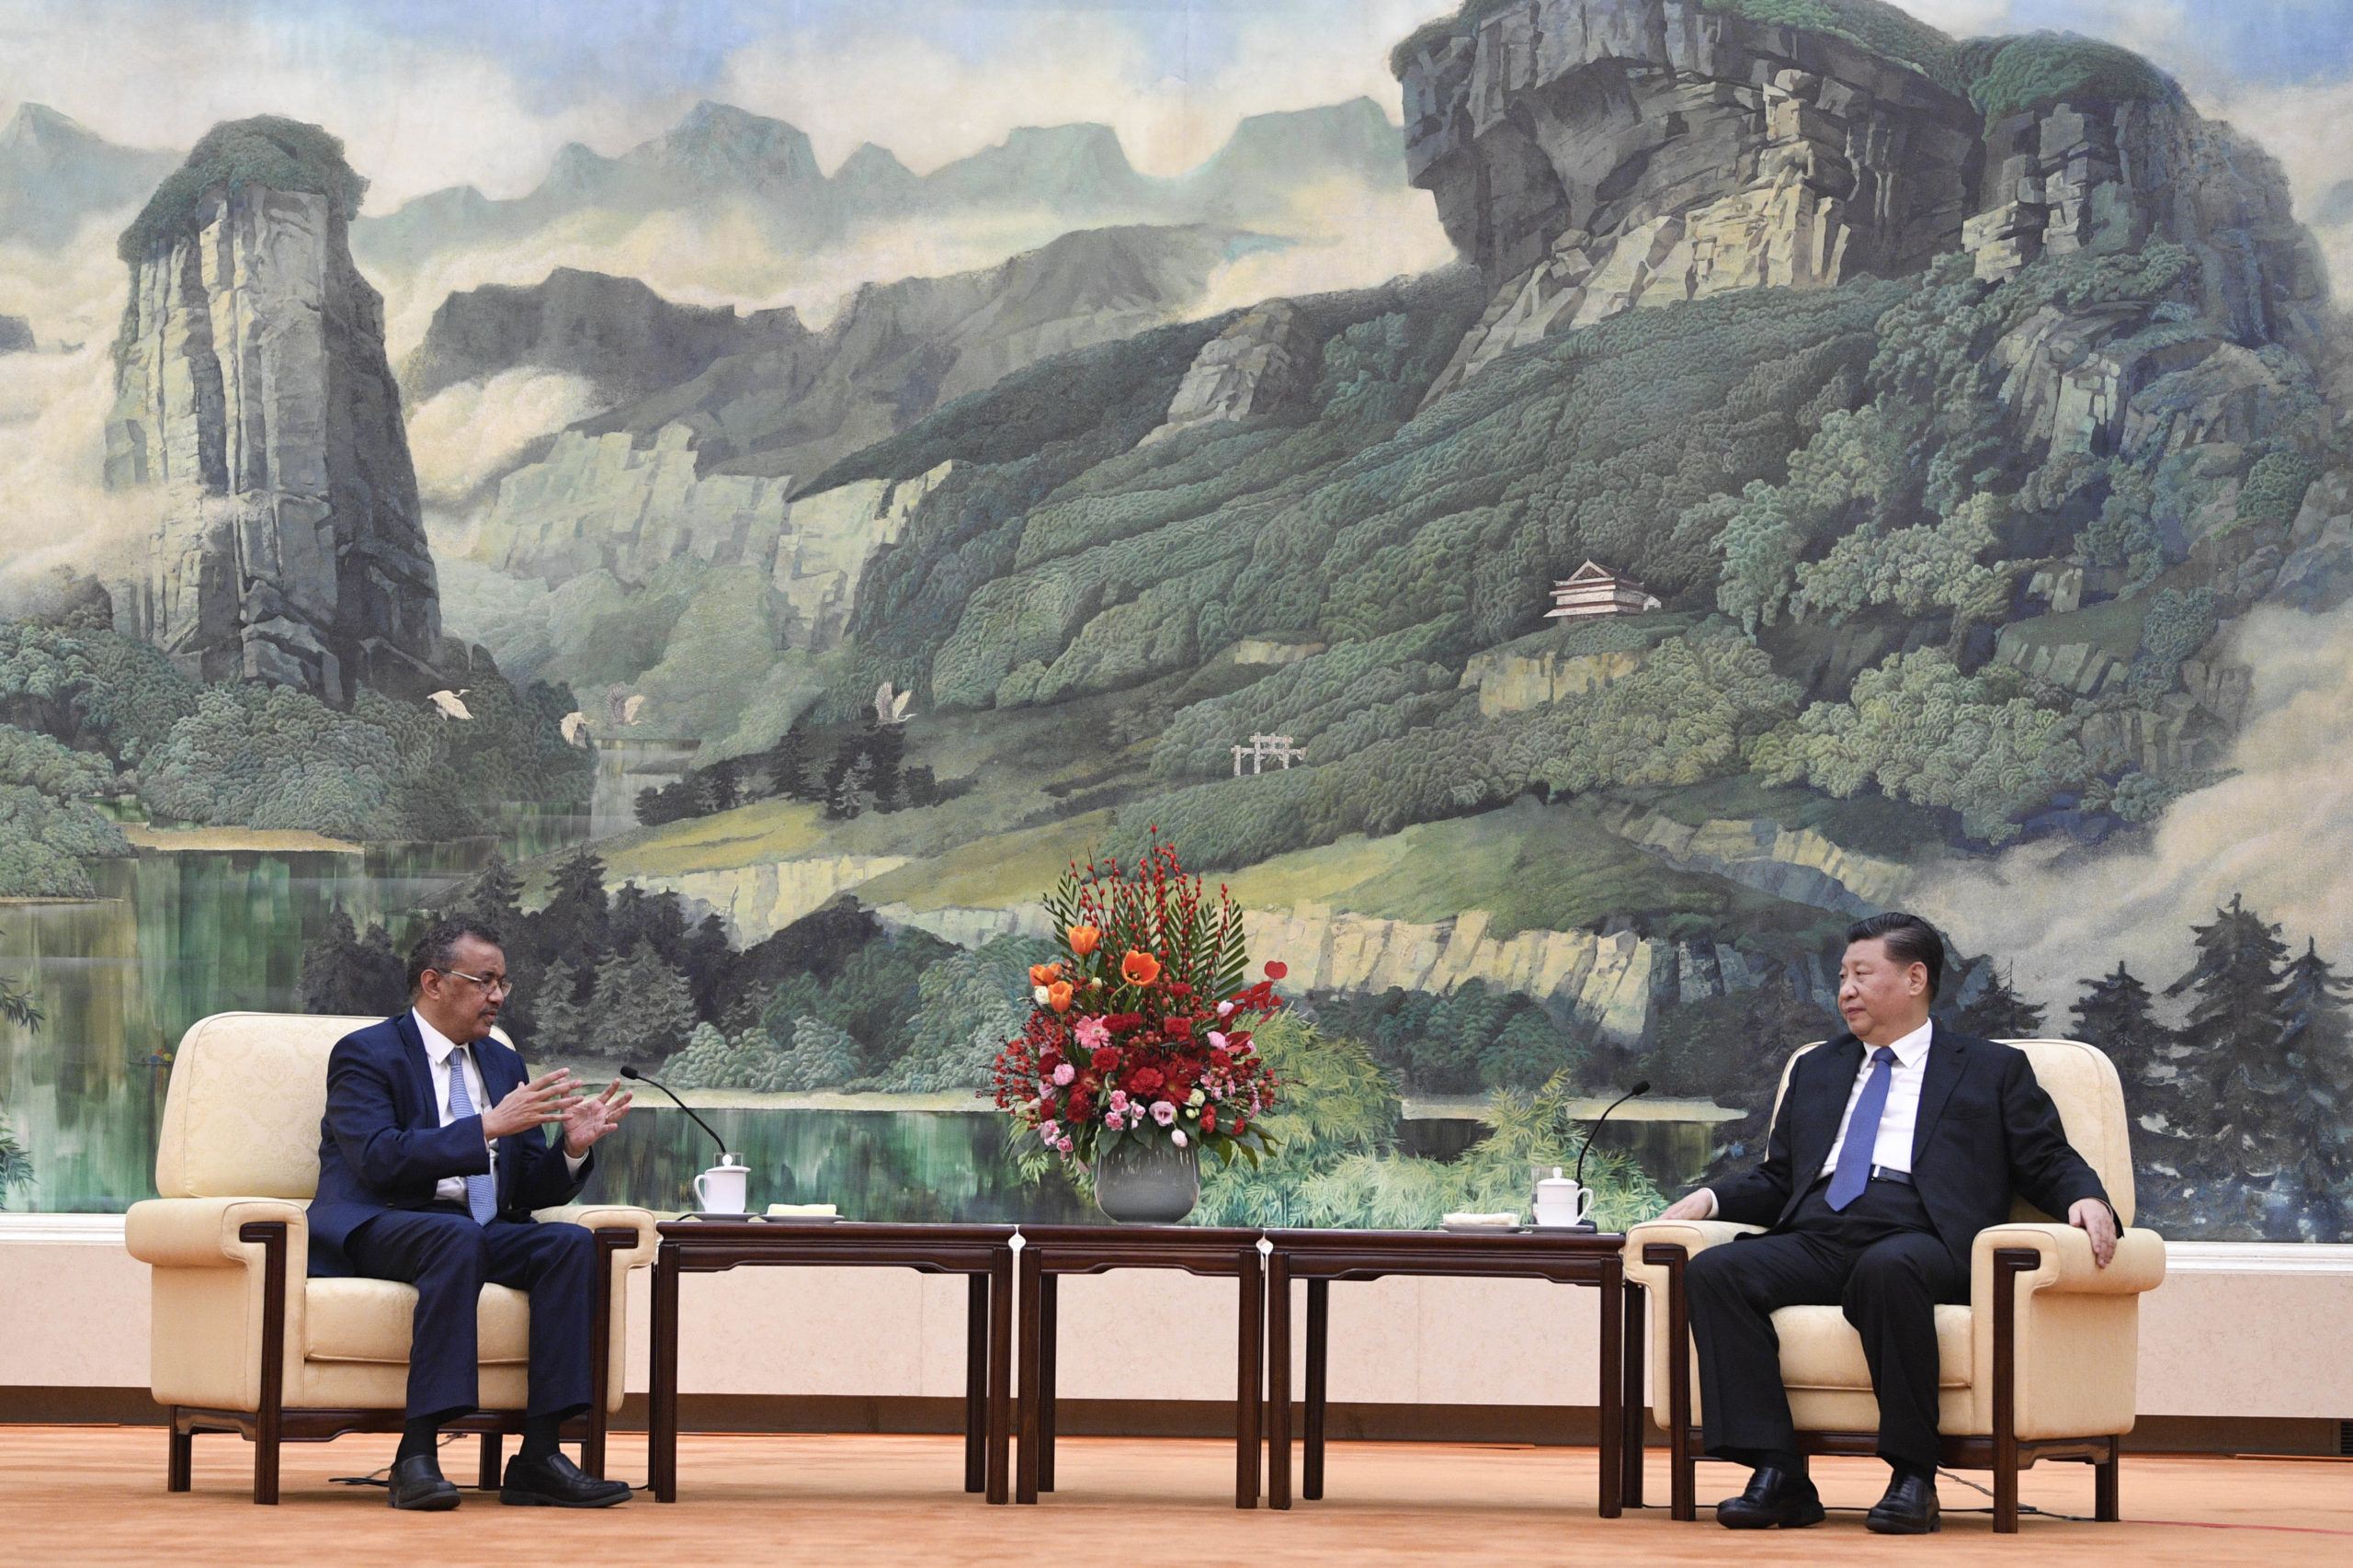 Director-General Tedros Adhanom of the World Health Organization, meets with Chinese President Xi Jinping on Jan. 28 in Beijing, China. (Naohiko Hatta/Pool/Getty Images)